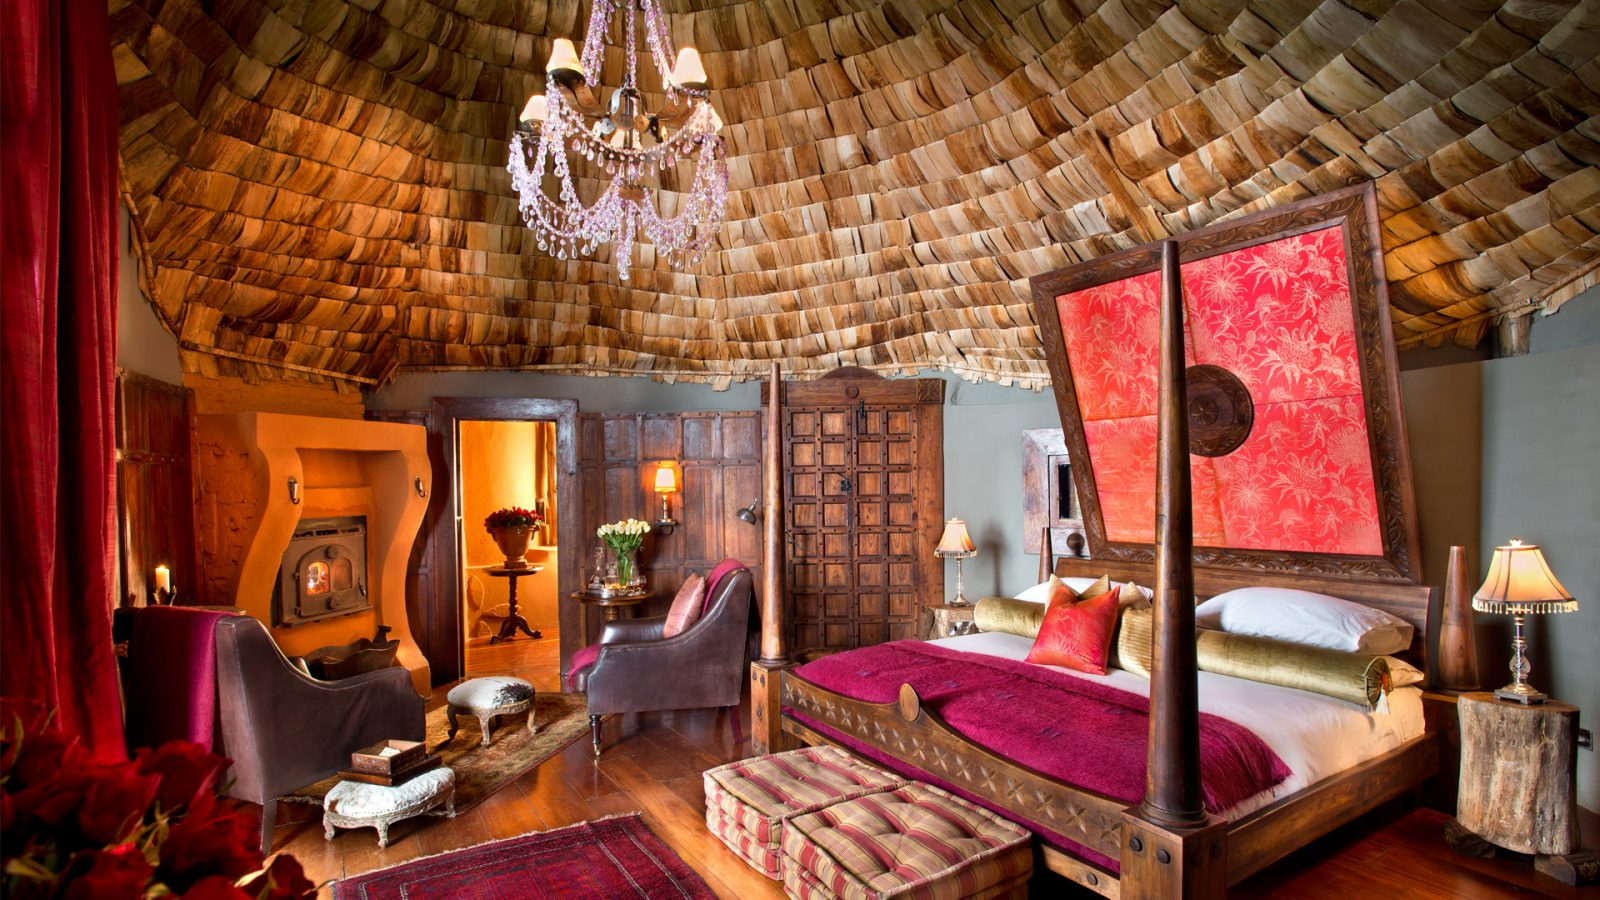 luxury lifestyle Luxury Lifestyle:  The Most Luxurious Hotel Rooms in Africa 5 NGORONGORO CRATER LODGE     TANZANIA